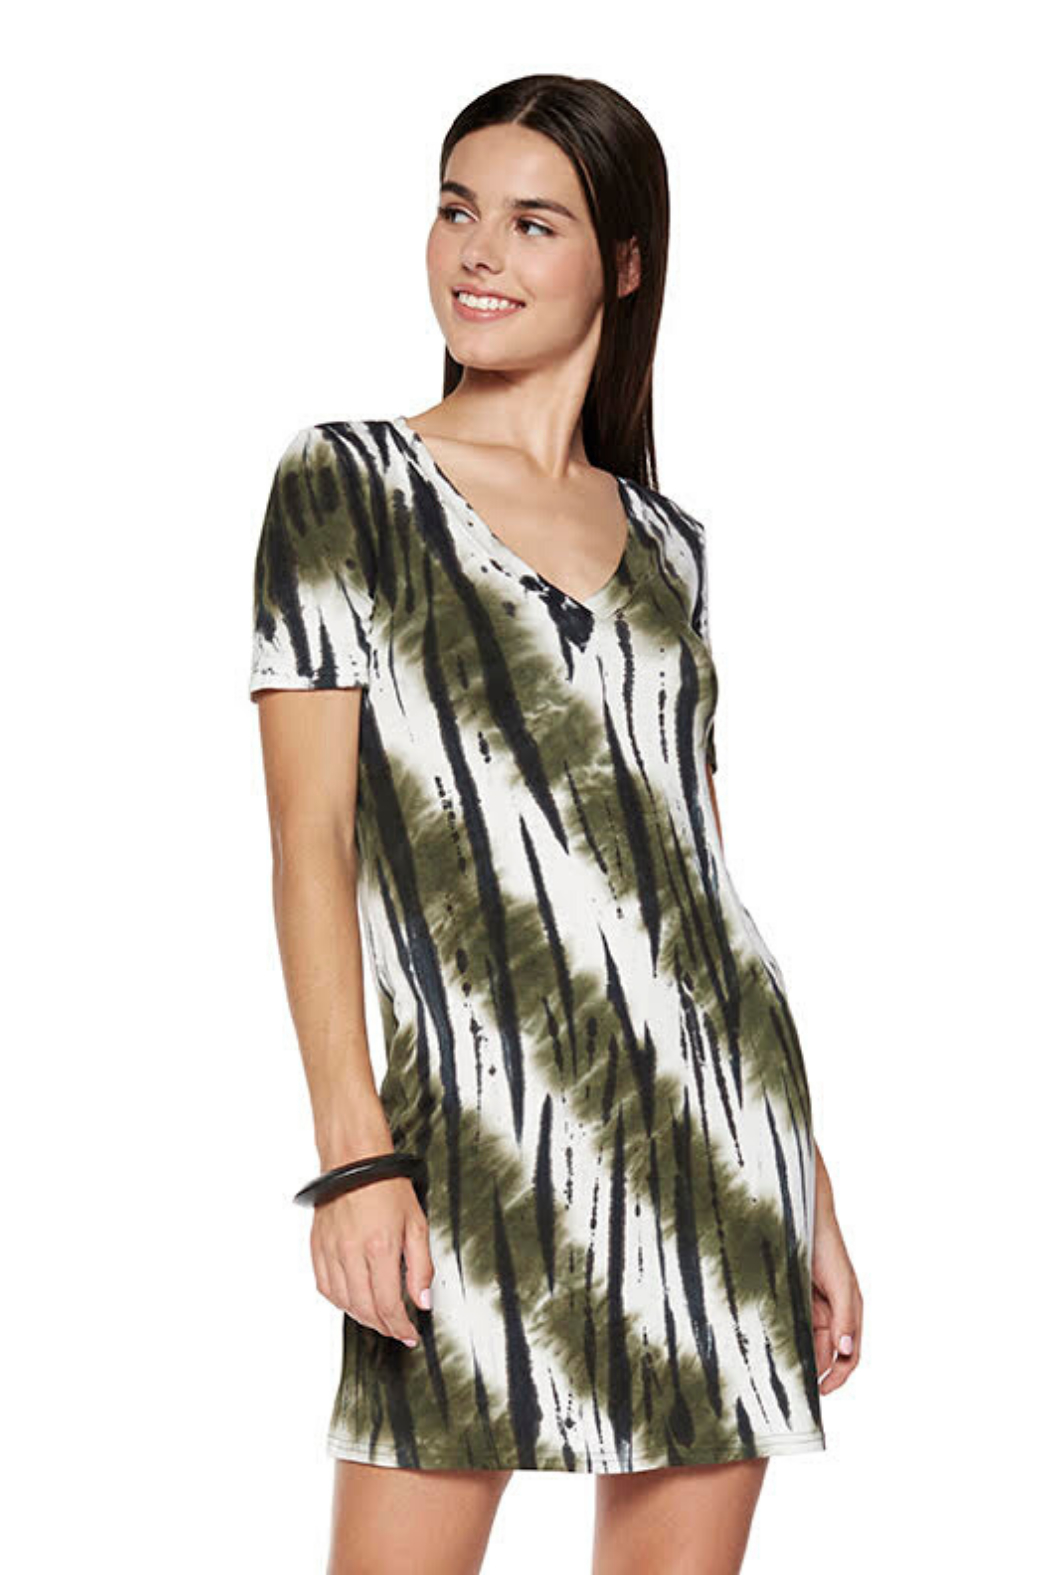 Viereck Madison tie dye v-neck s/s dress - Main Image